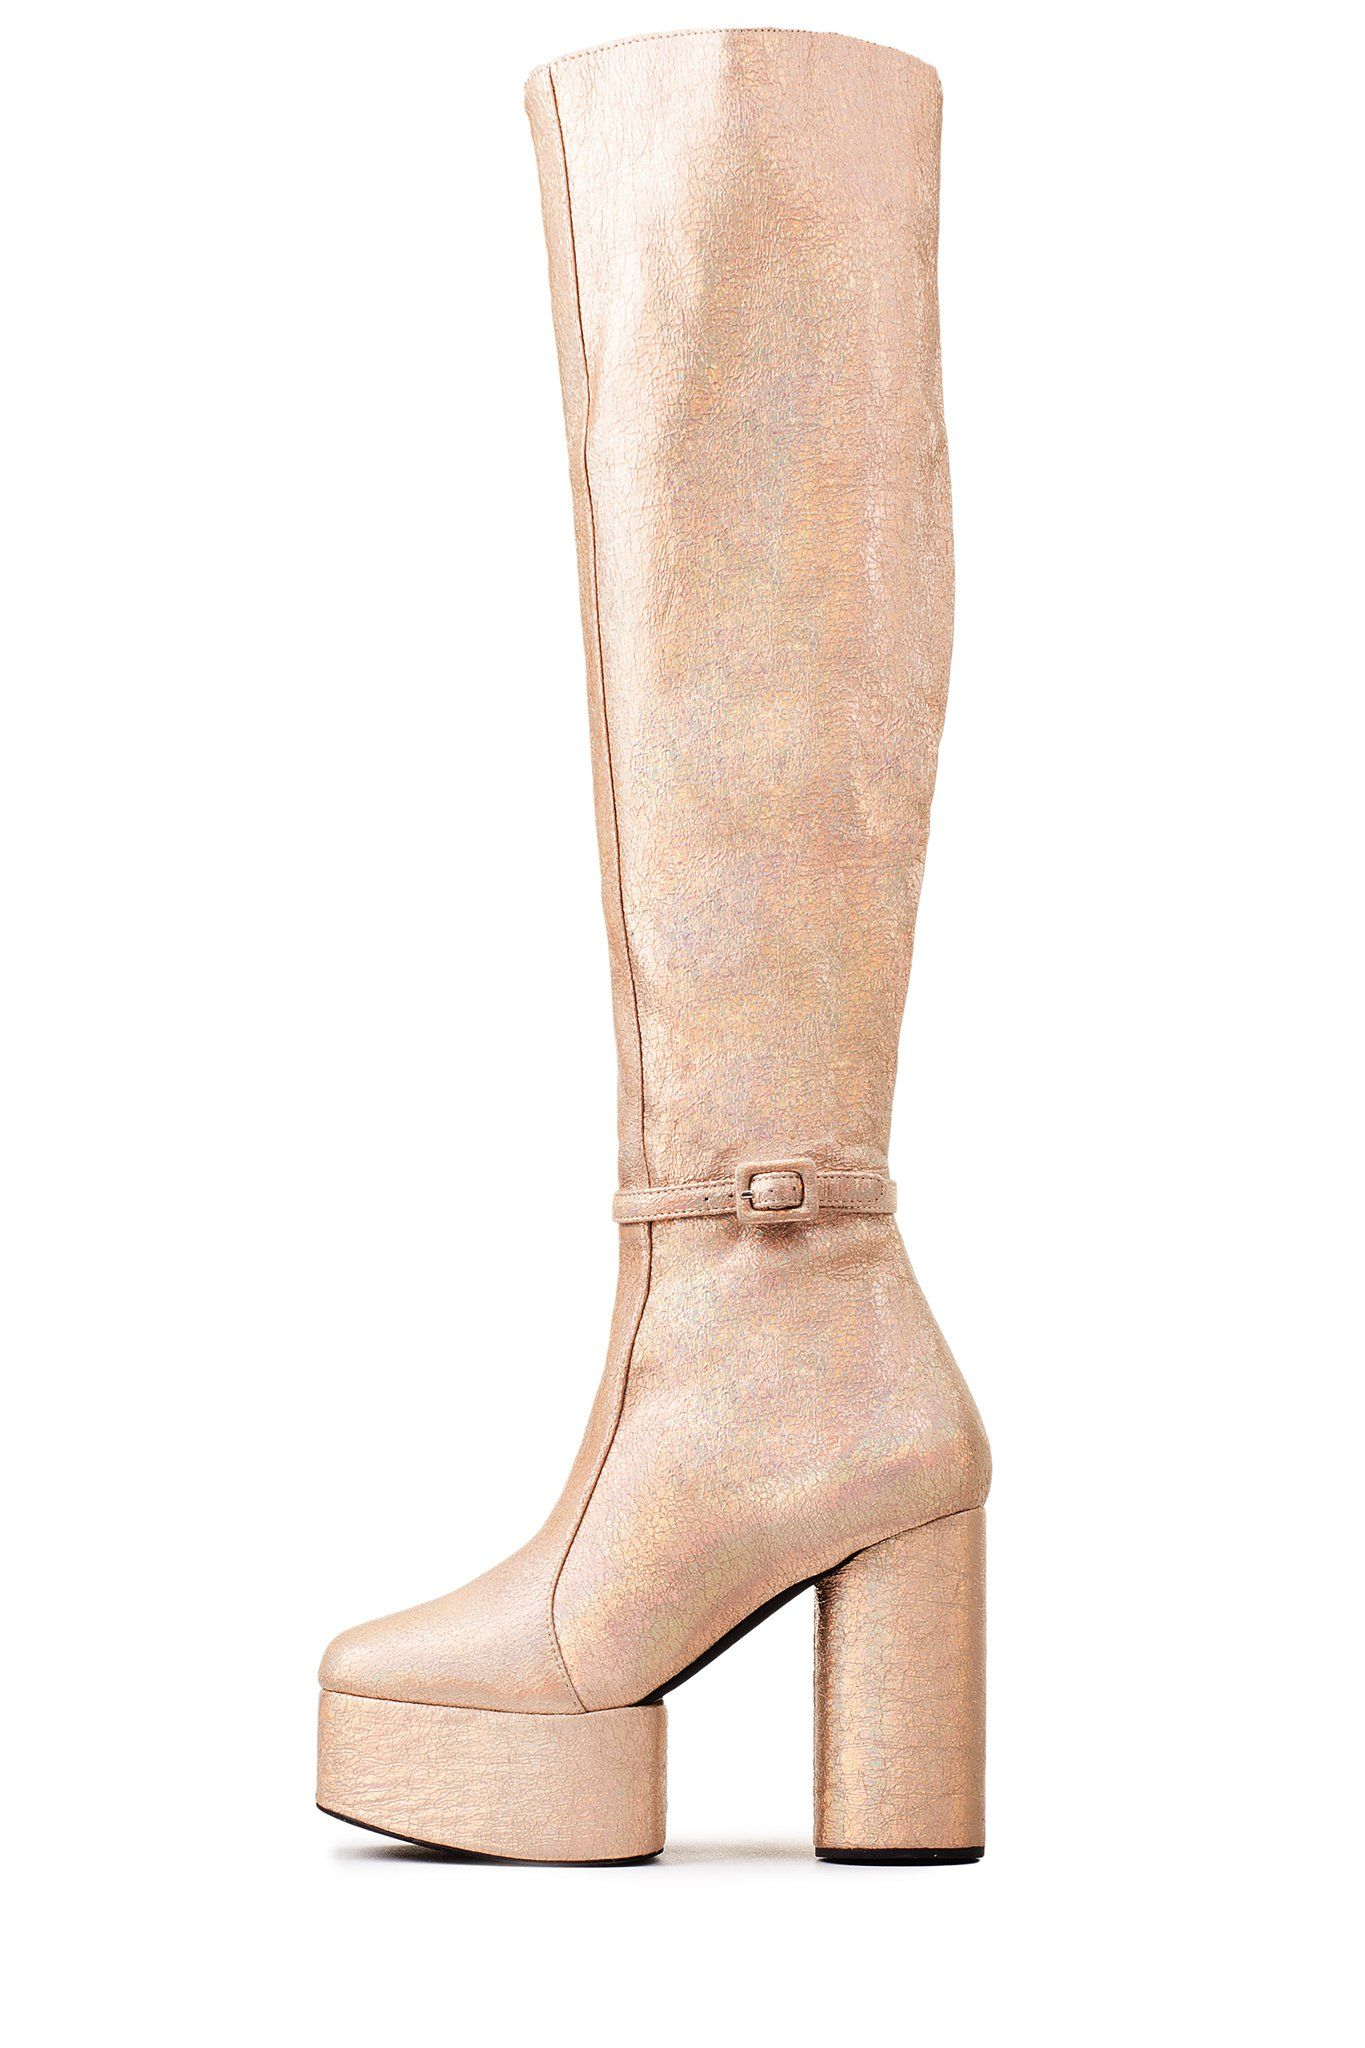 cf9bffbb794 RICOCHET over the knee platform boot by Jeffrey Campbell   Just ...